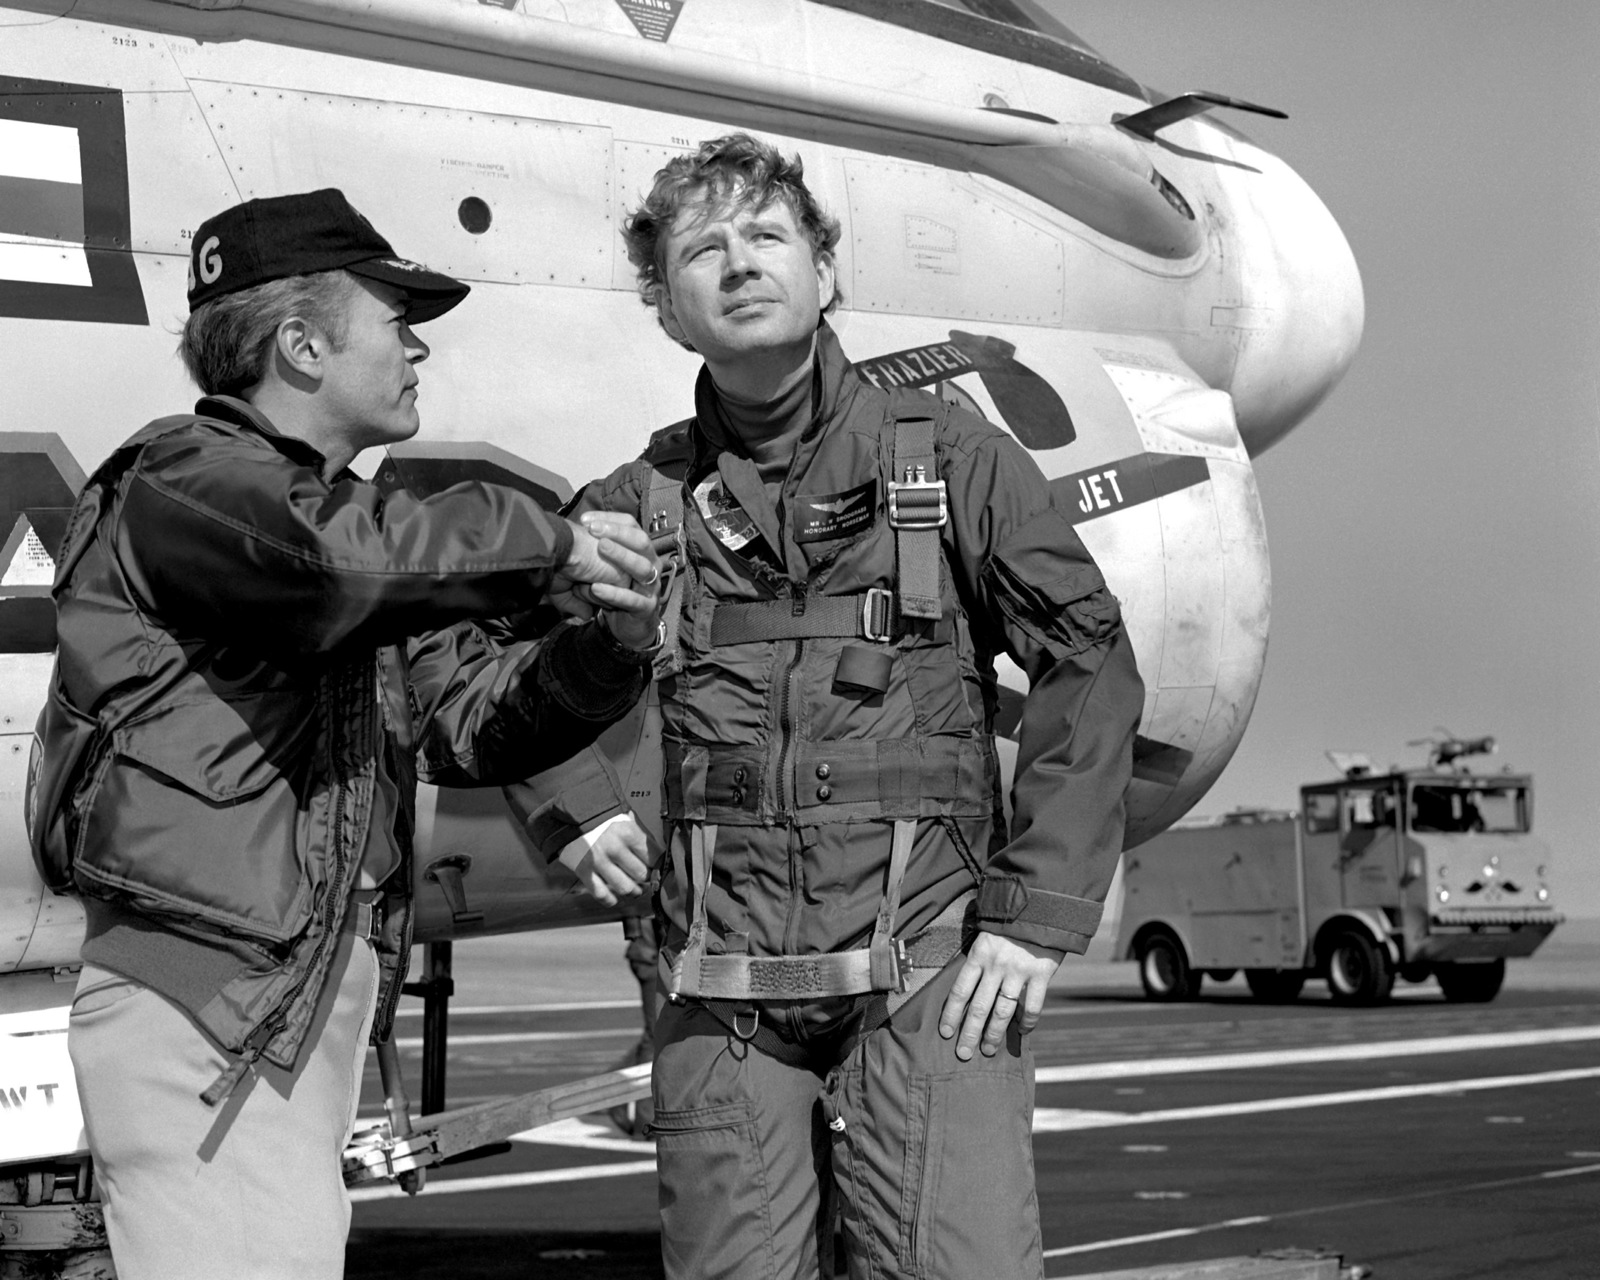 A Navy pilot talks to Charles Snodgrass, right, a distinguished visitor, as they stand on the flight deck of the aircraft carrier USS INDEPENDENCE (CV-62)